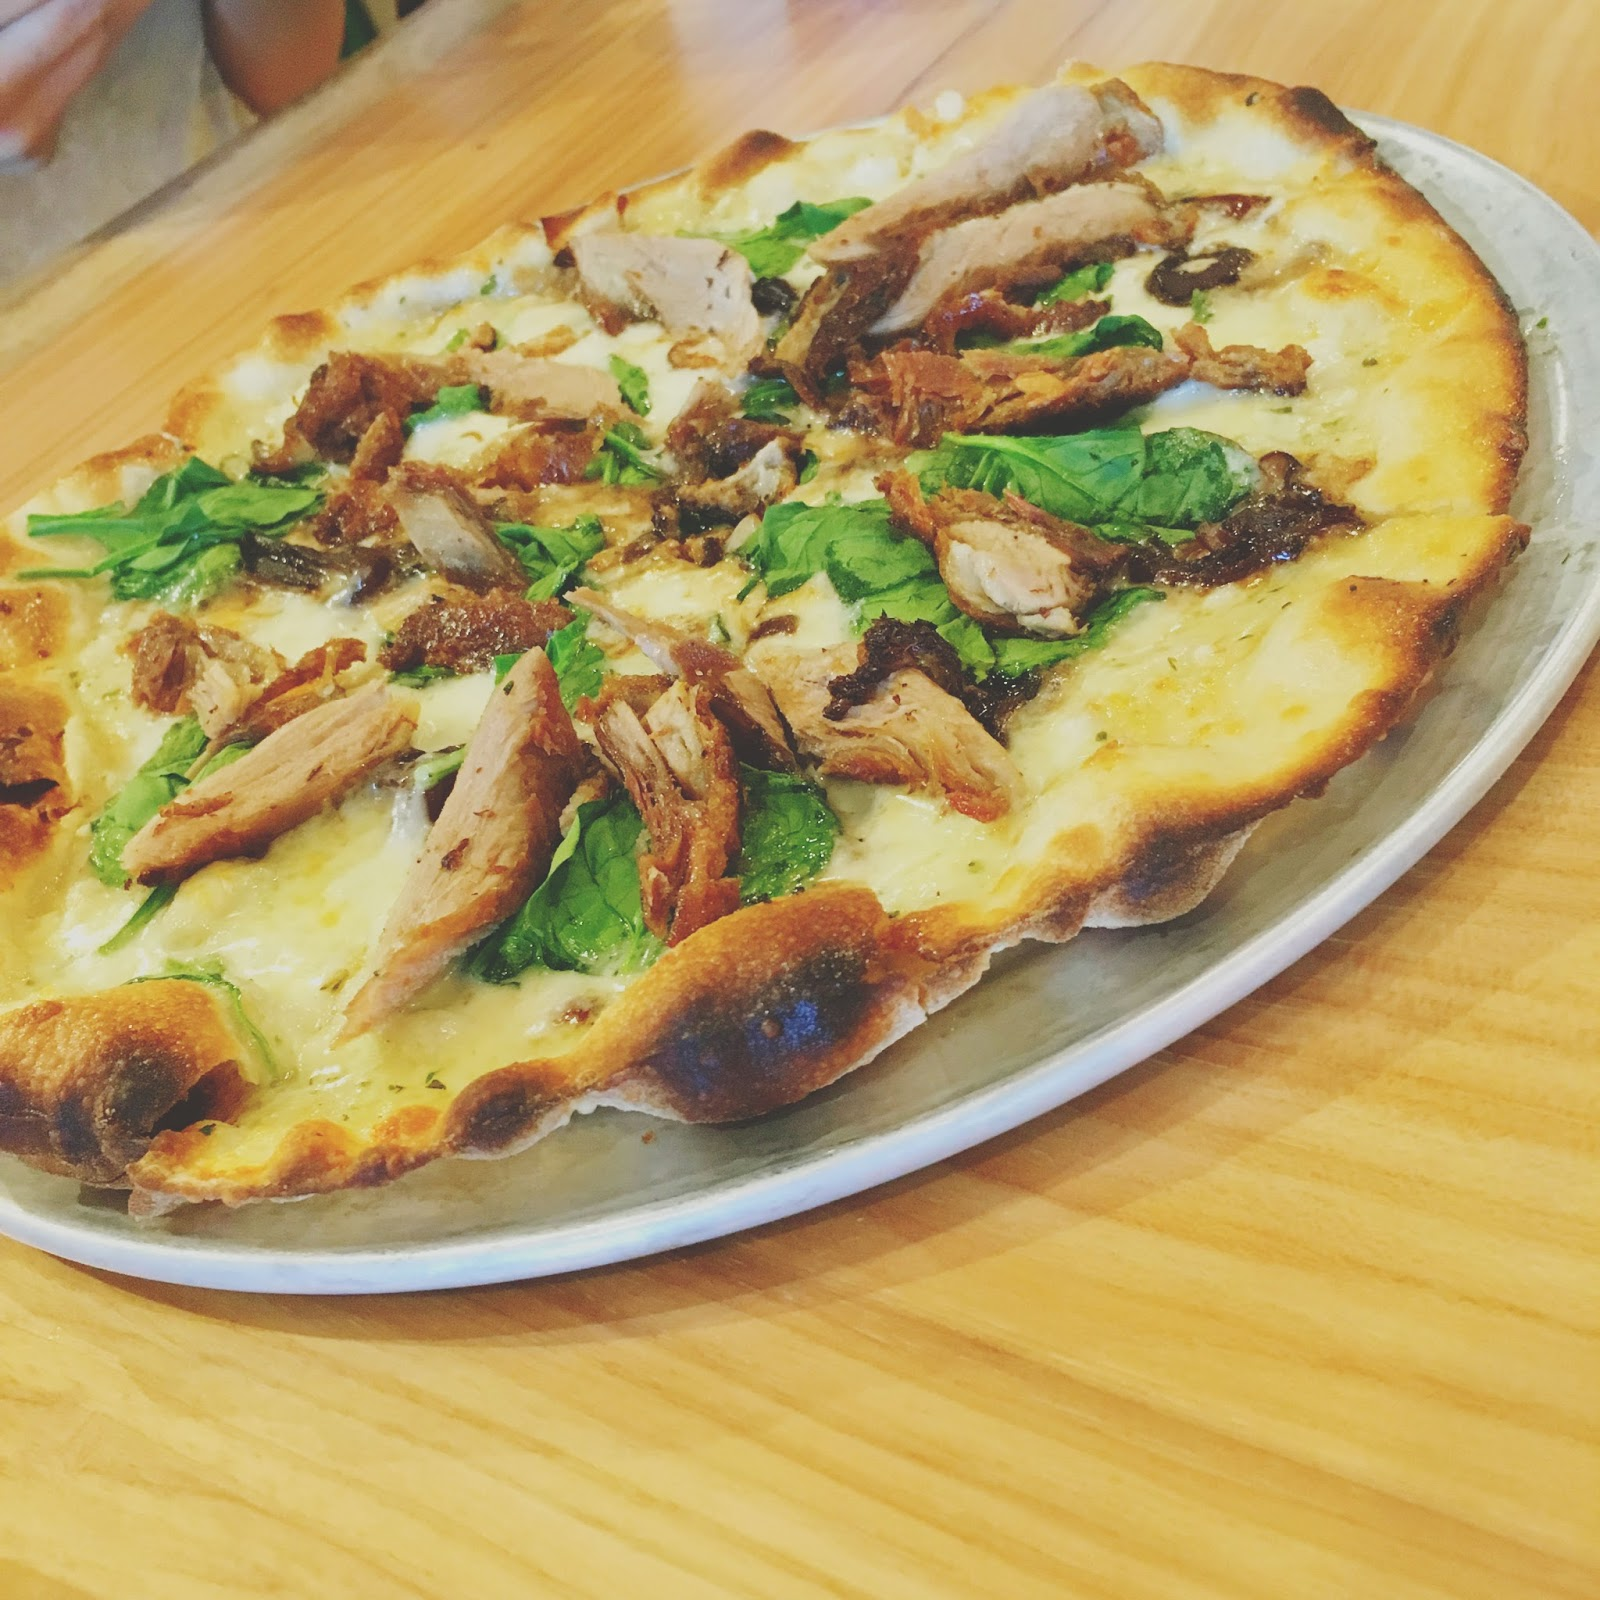 crispy duck pizza at H.S. Green - A healthy restaurant in Houston, Texas